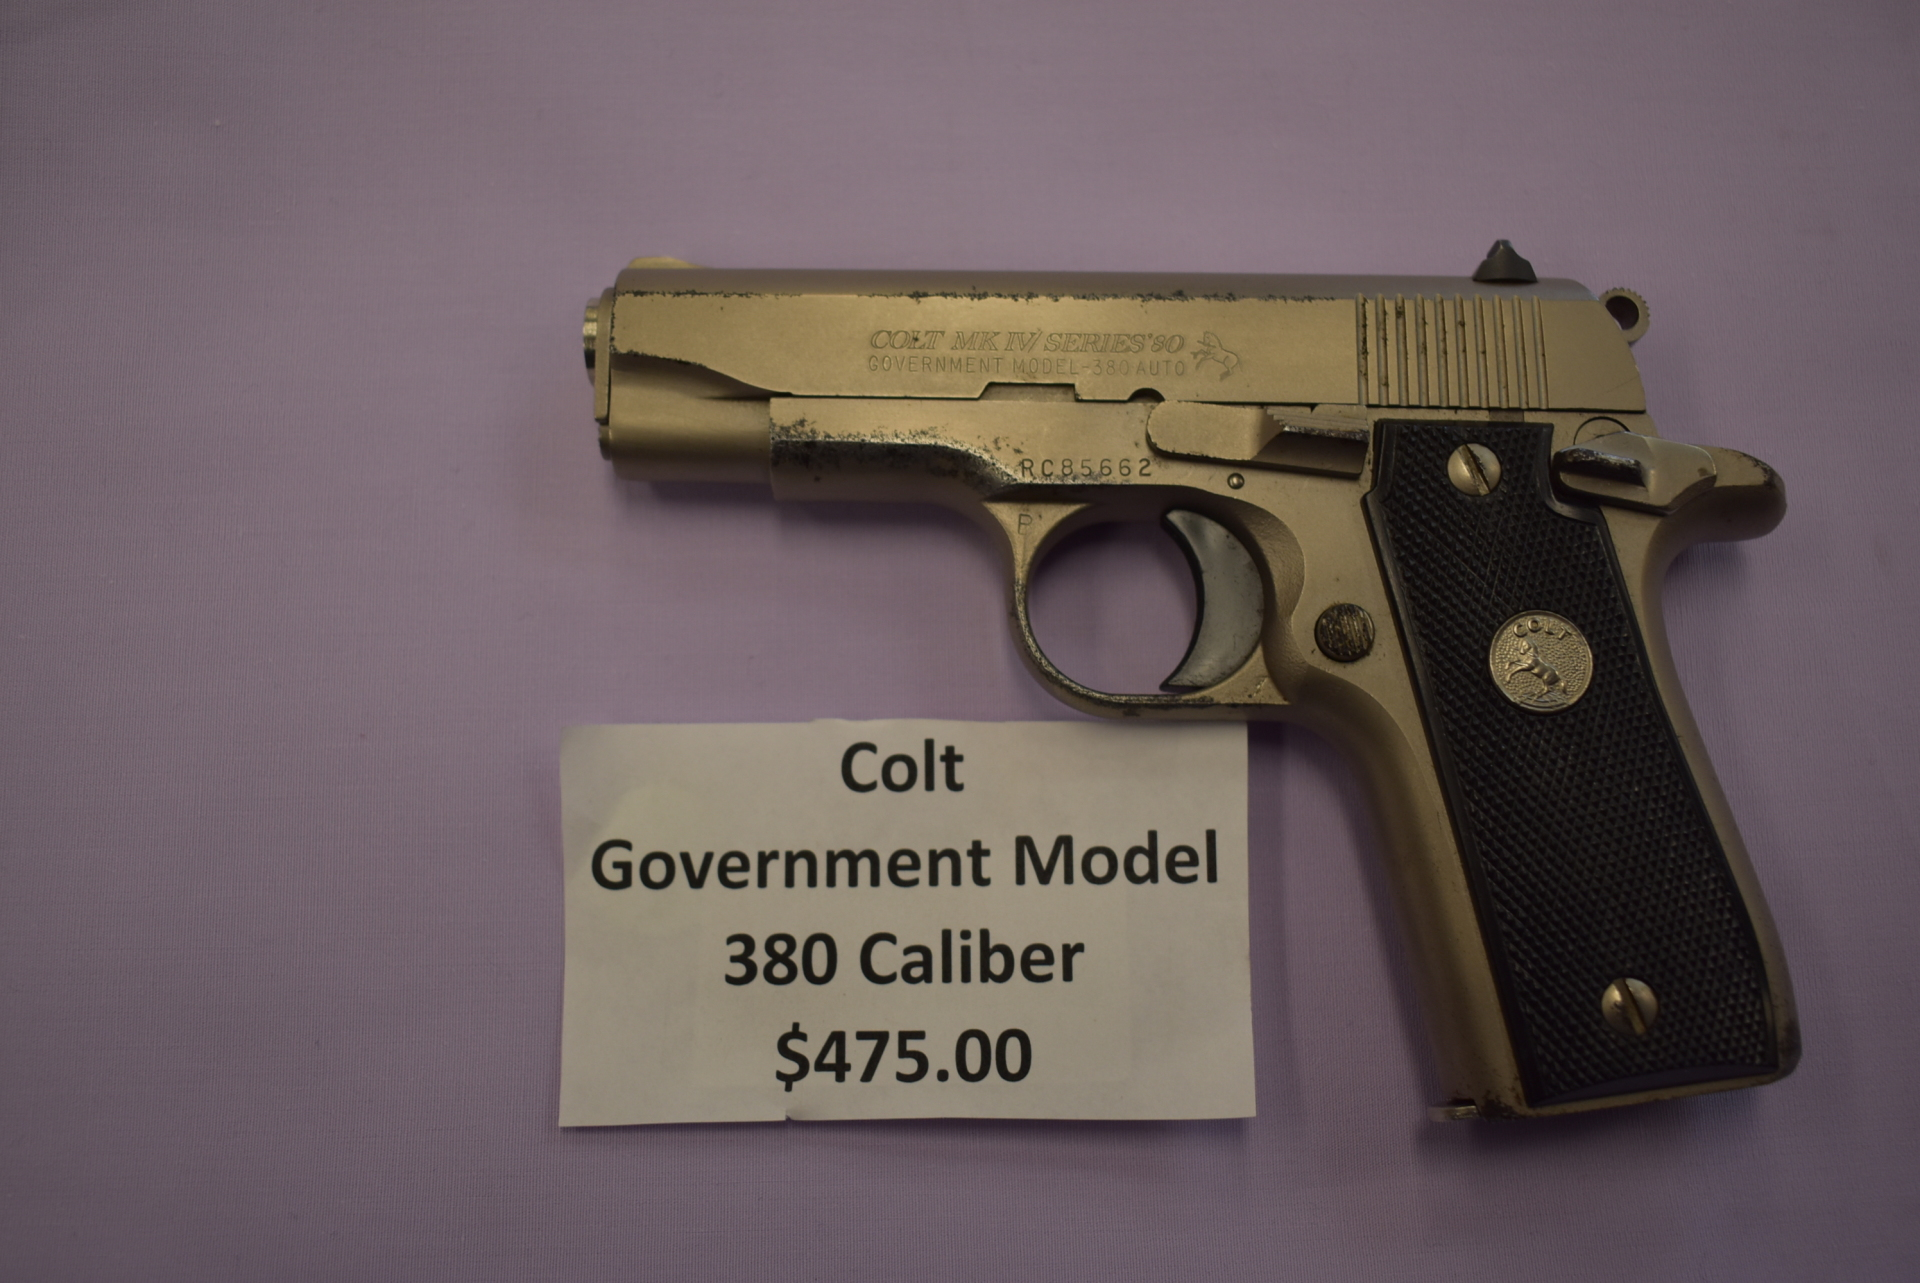 Colt Government Model